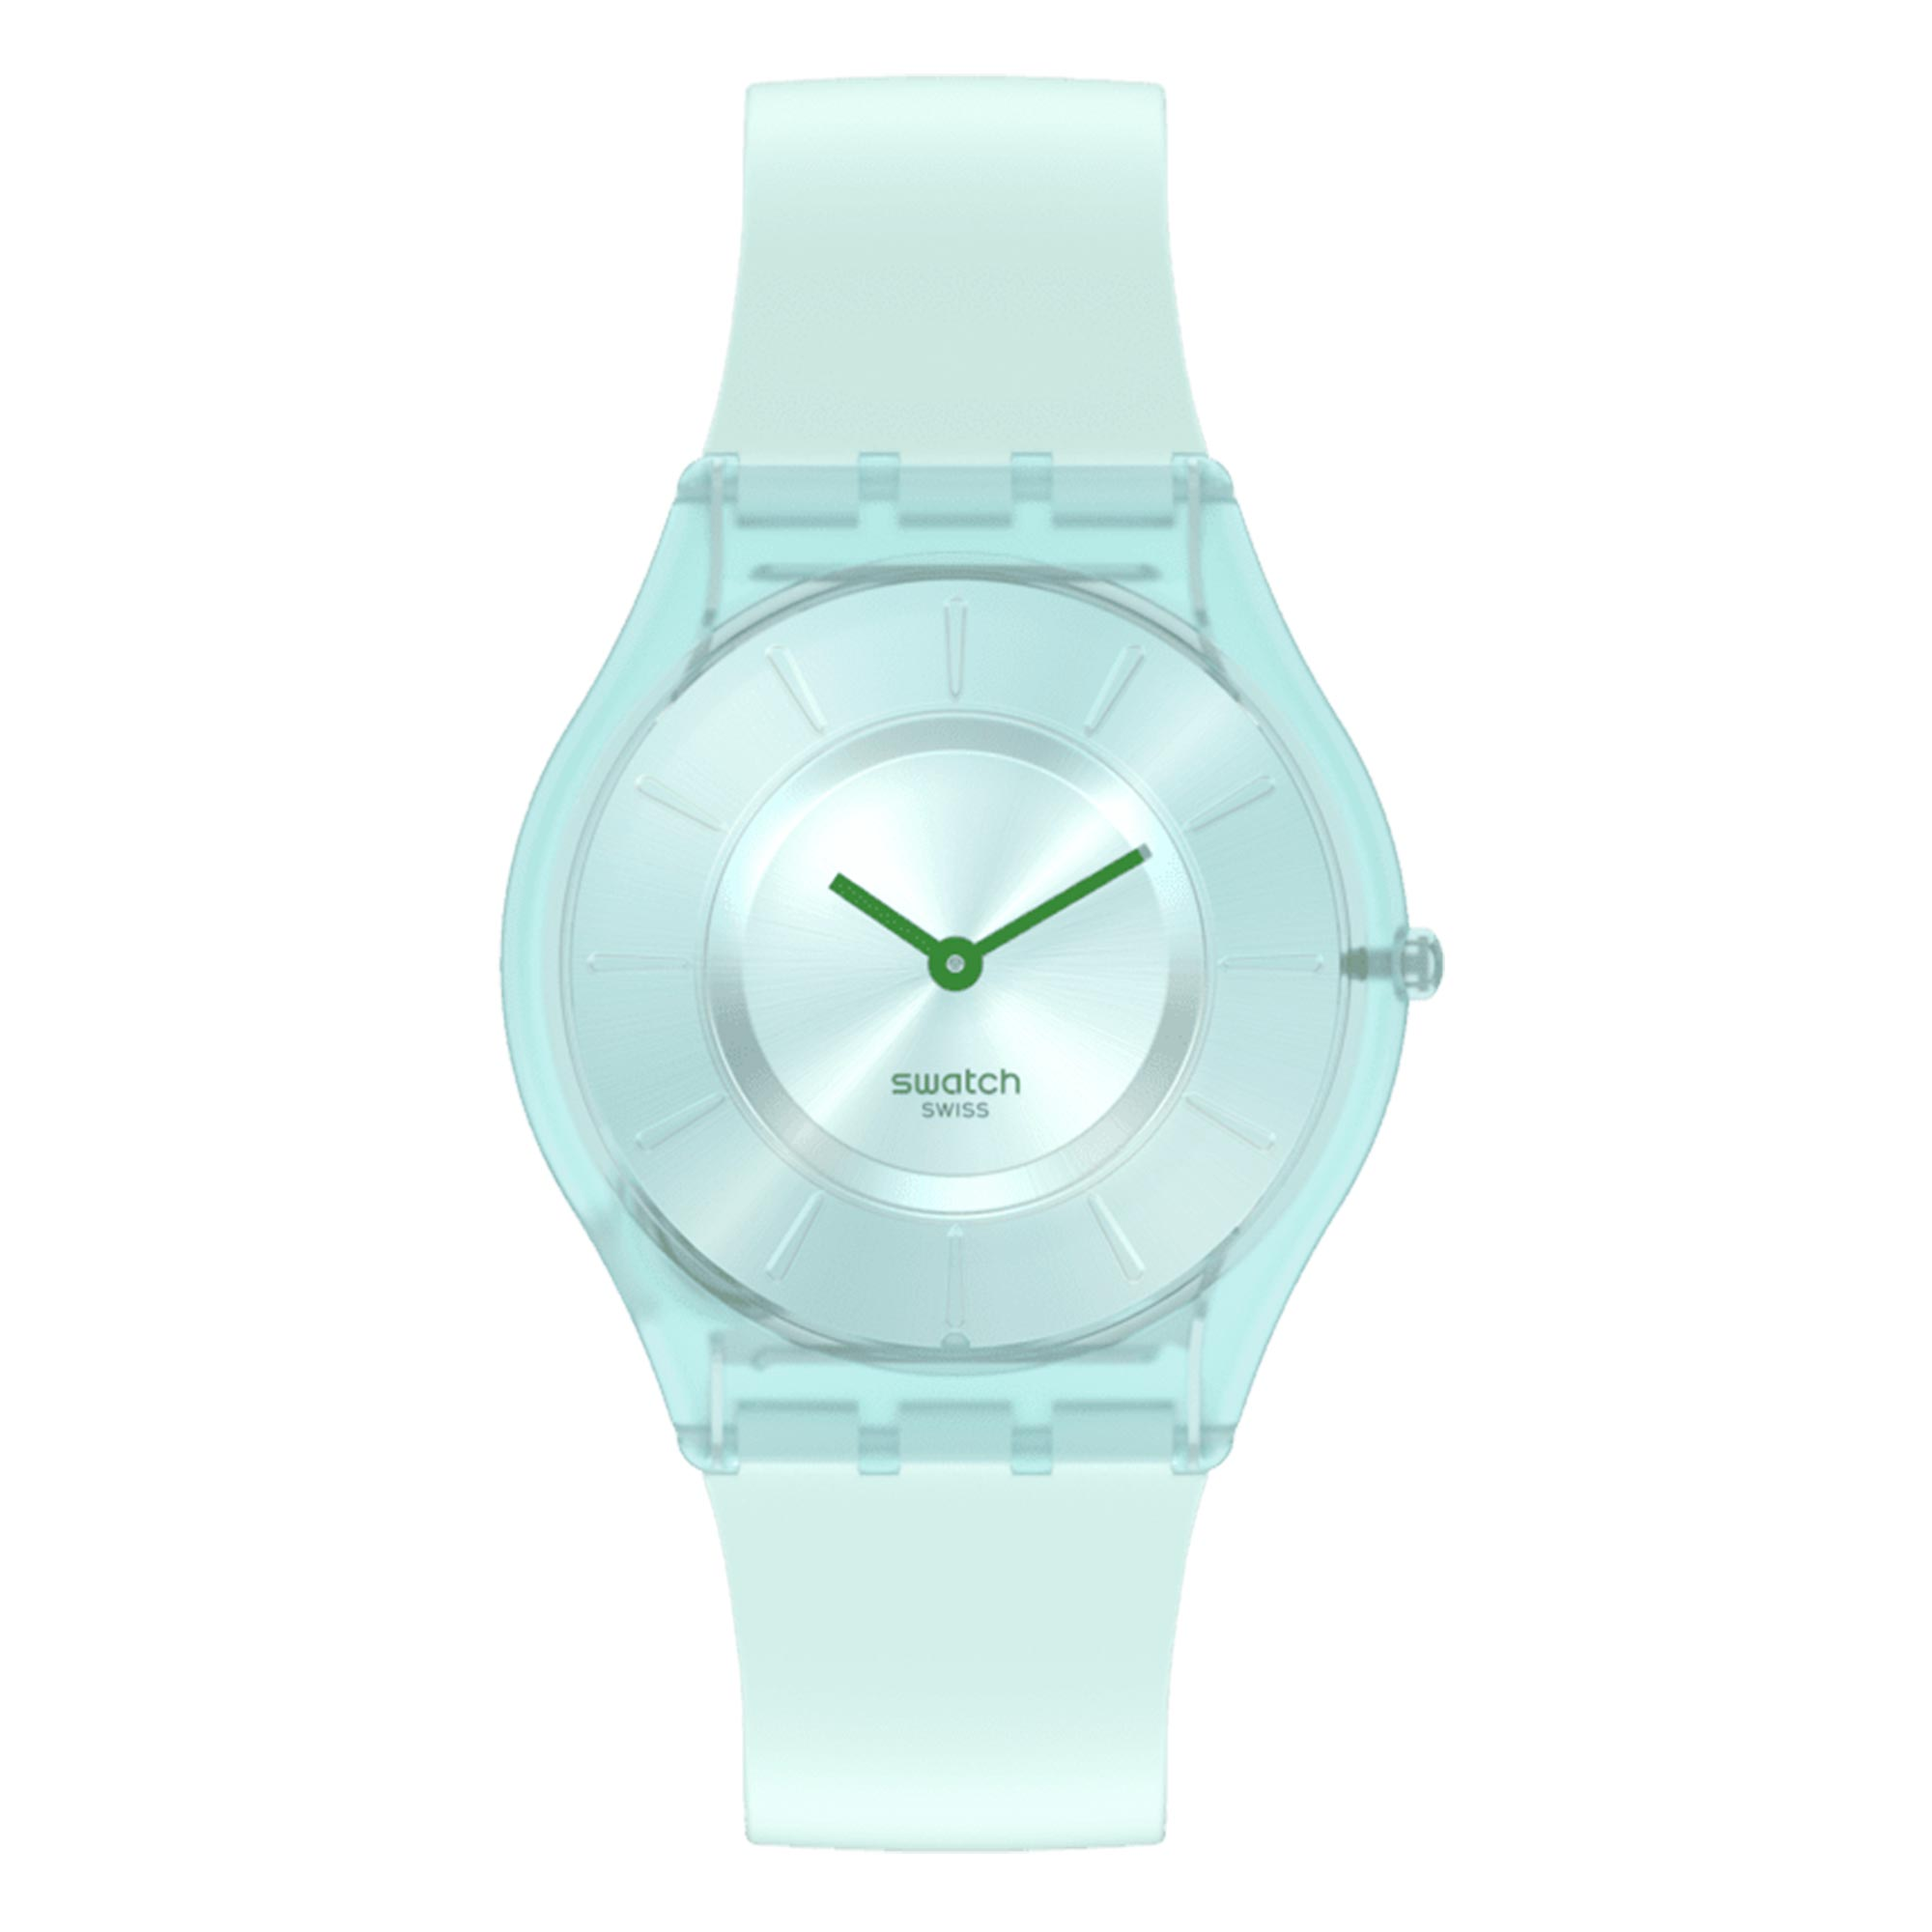 Swatch Sweet Mint Green Quartz Movement Green Dial Silicone Strap Watch SS08G100